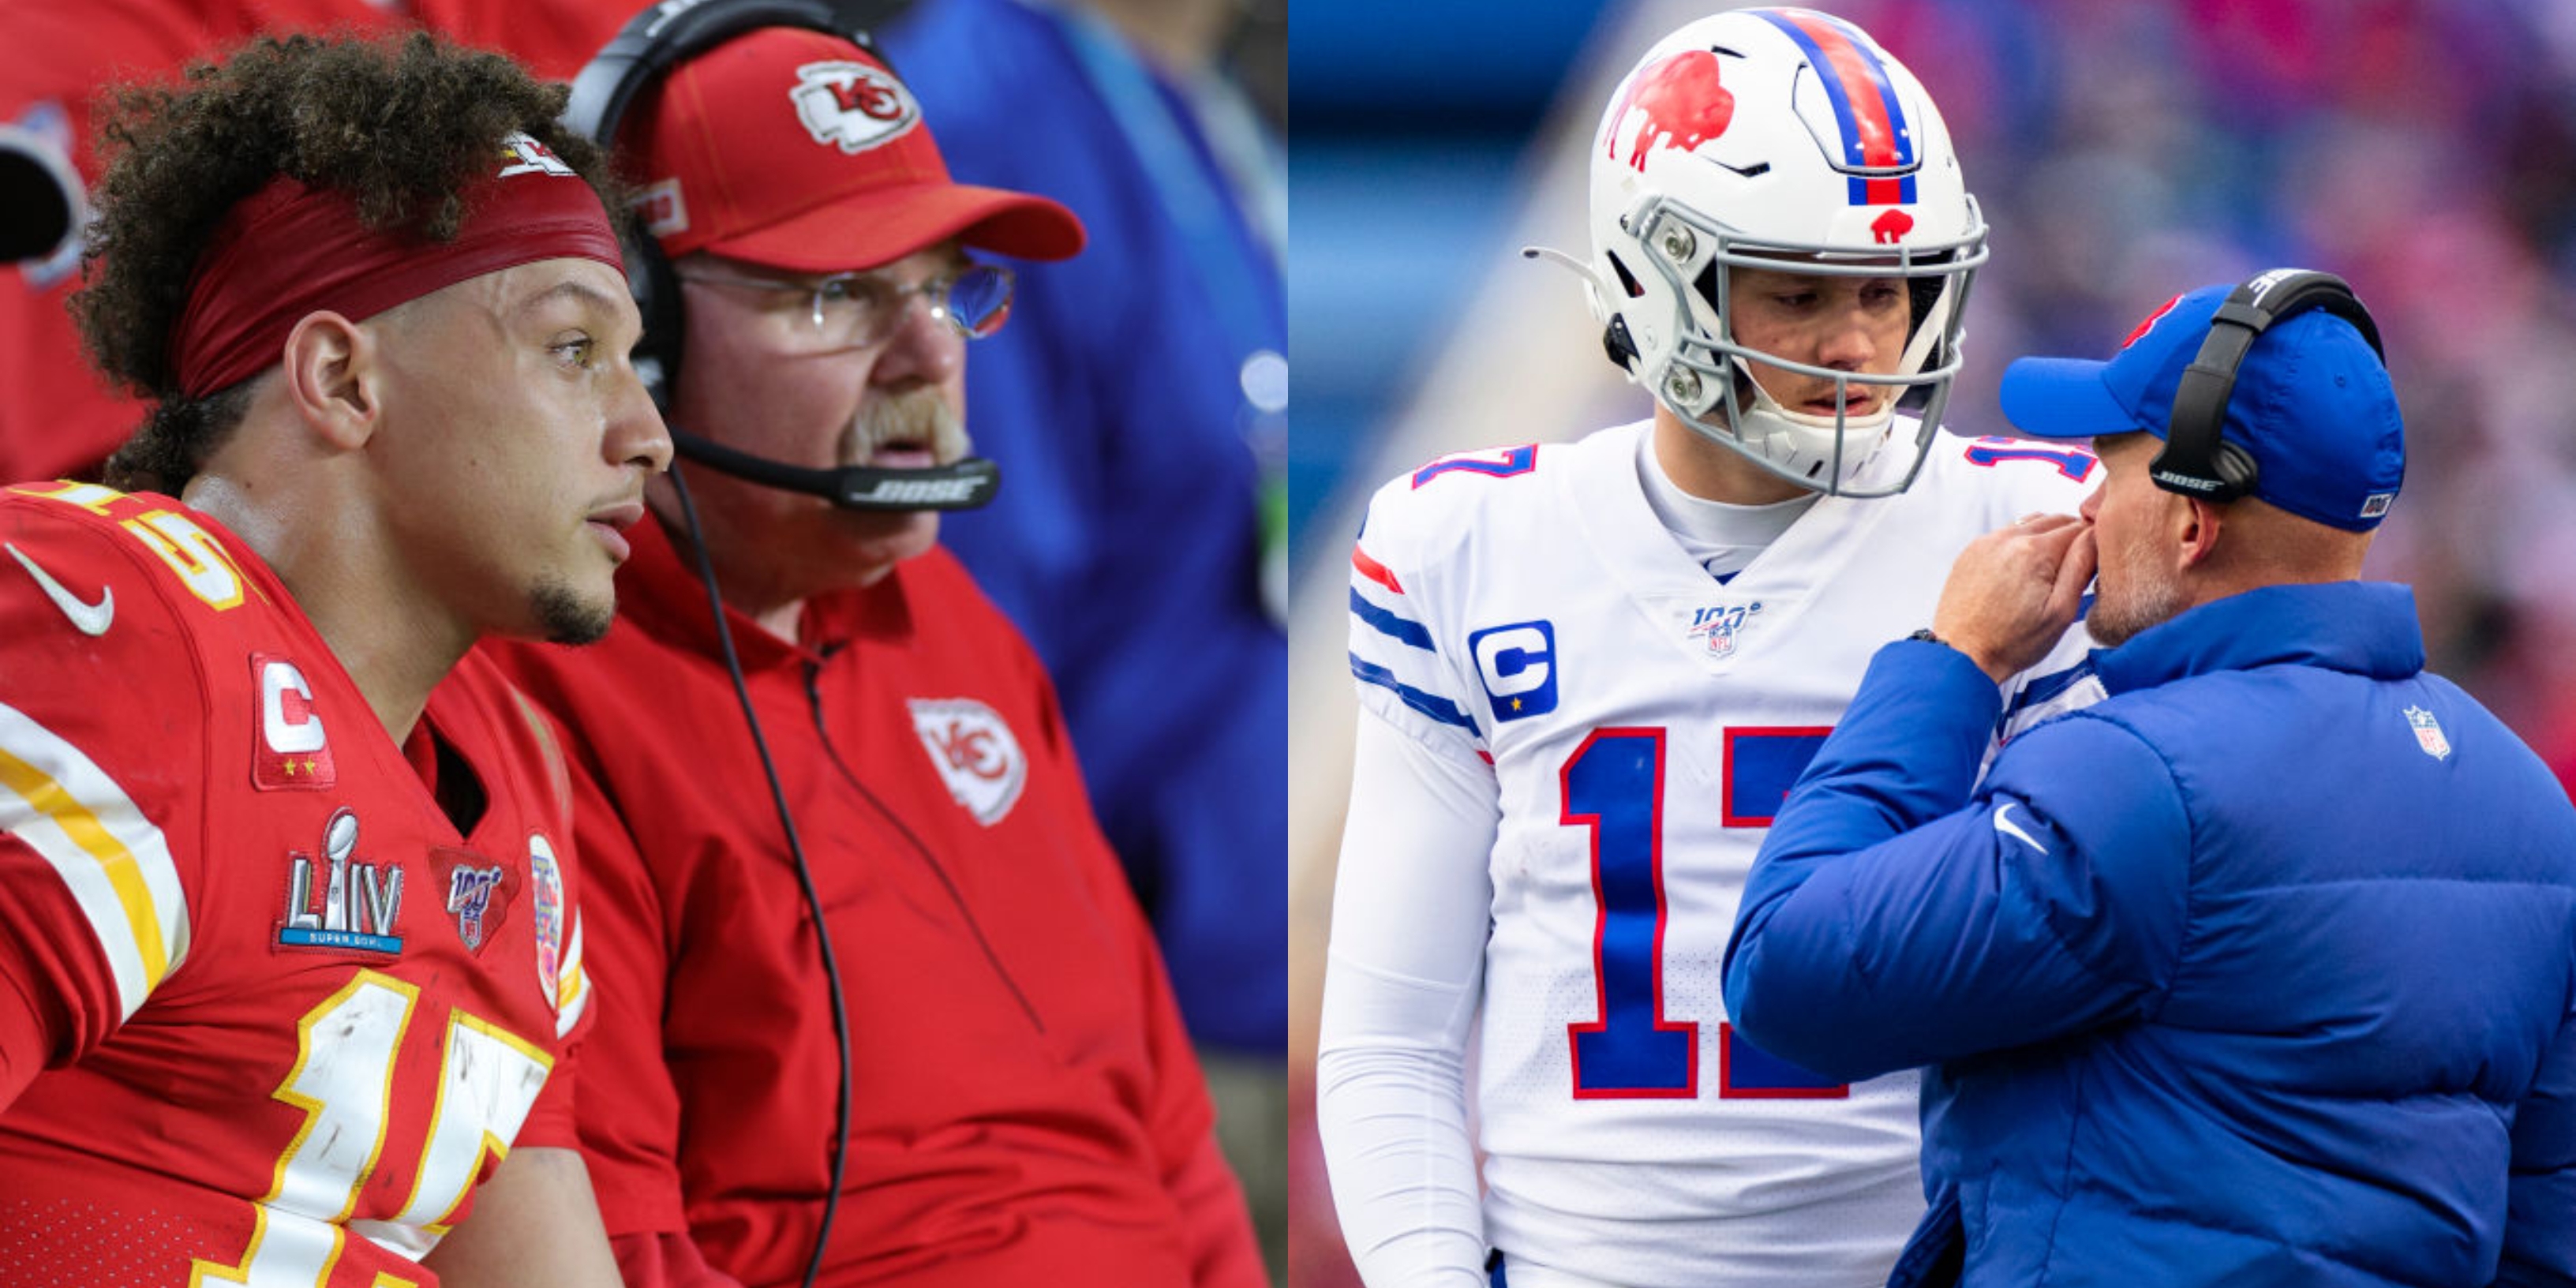 5 takeaways from Chiefs-49ers Super Bowl that suggest Buffalo Bills will contend in 2020